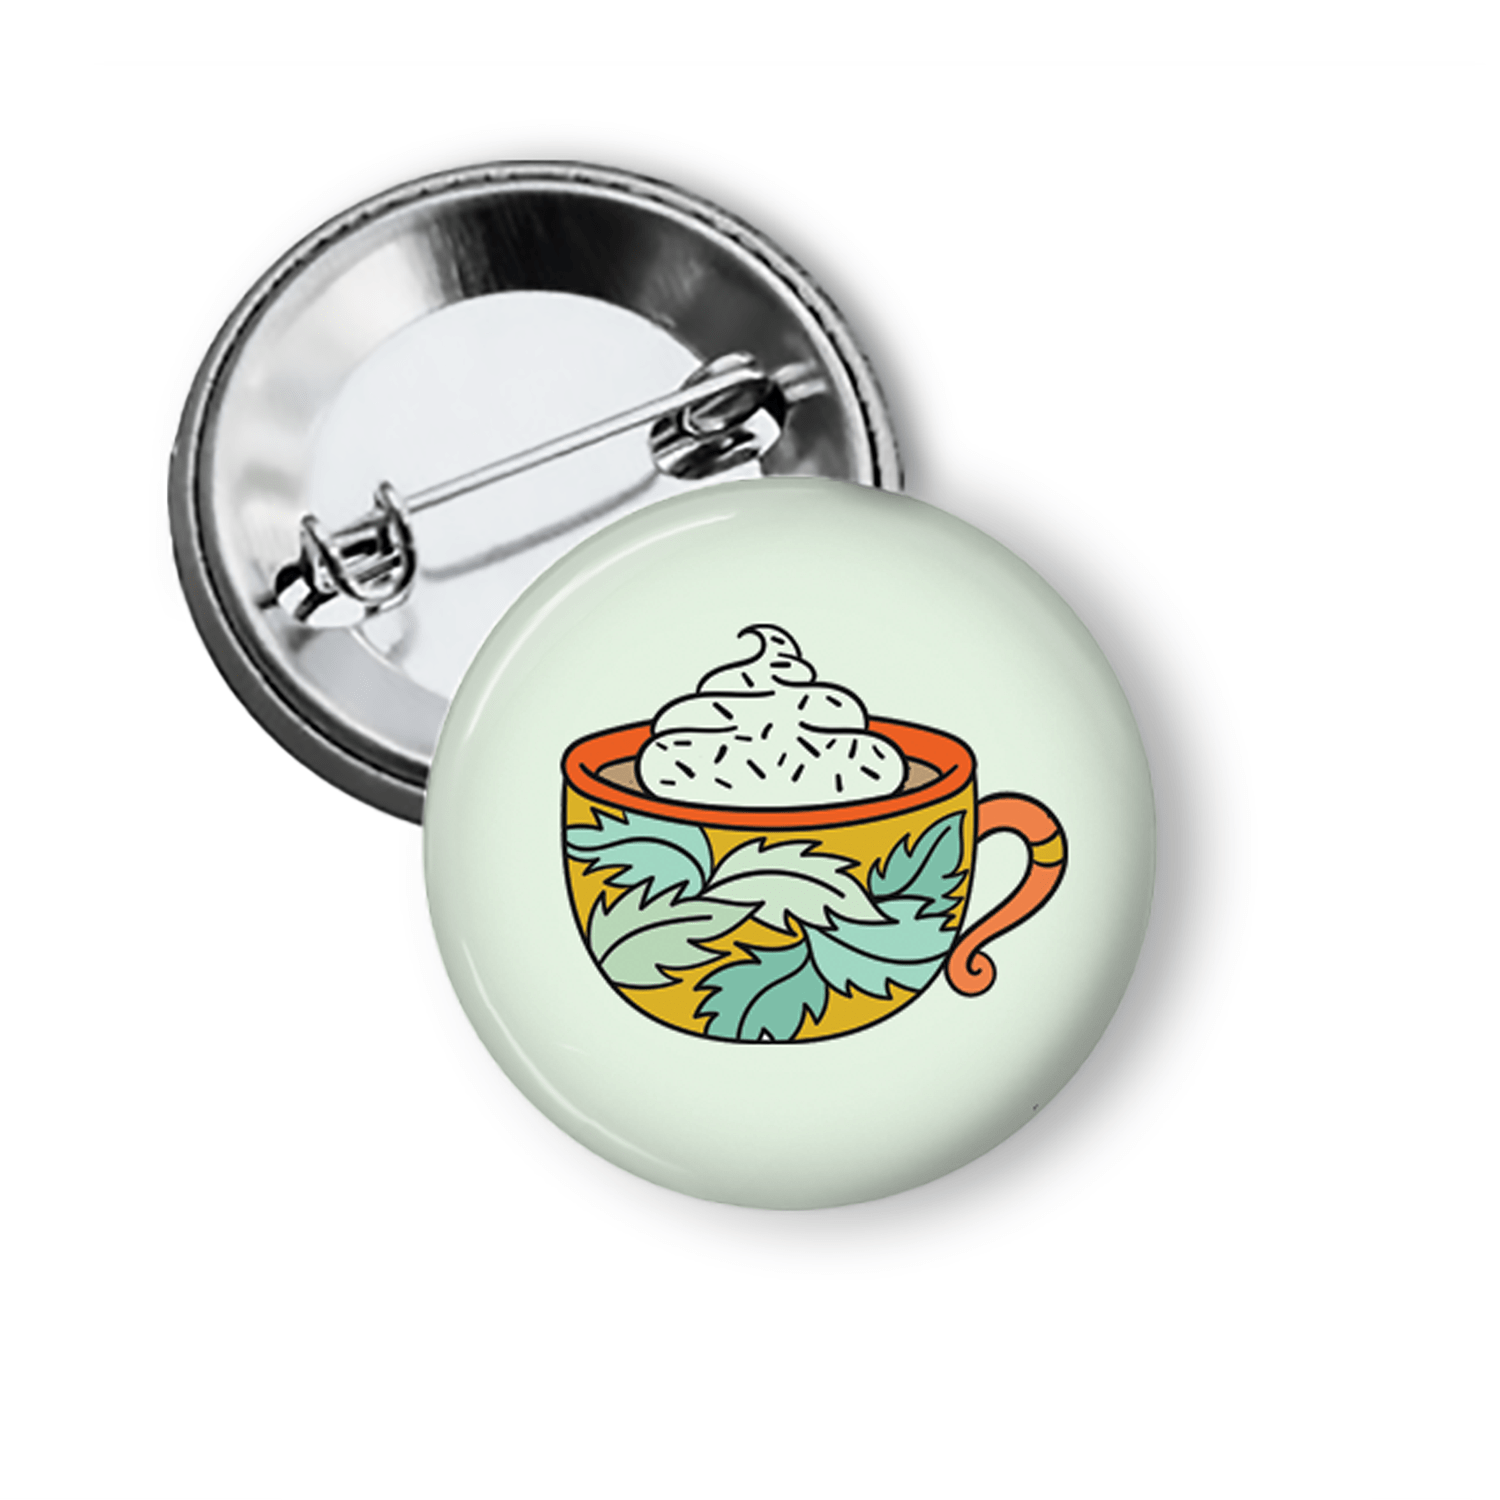 Fun Pins for Fall Mug of Cocoa Pins Buttons For the People